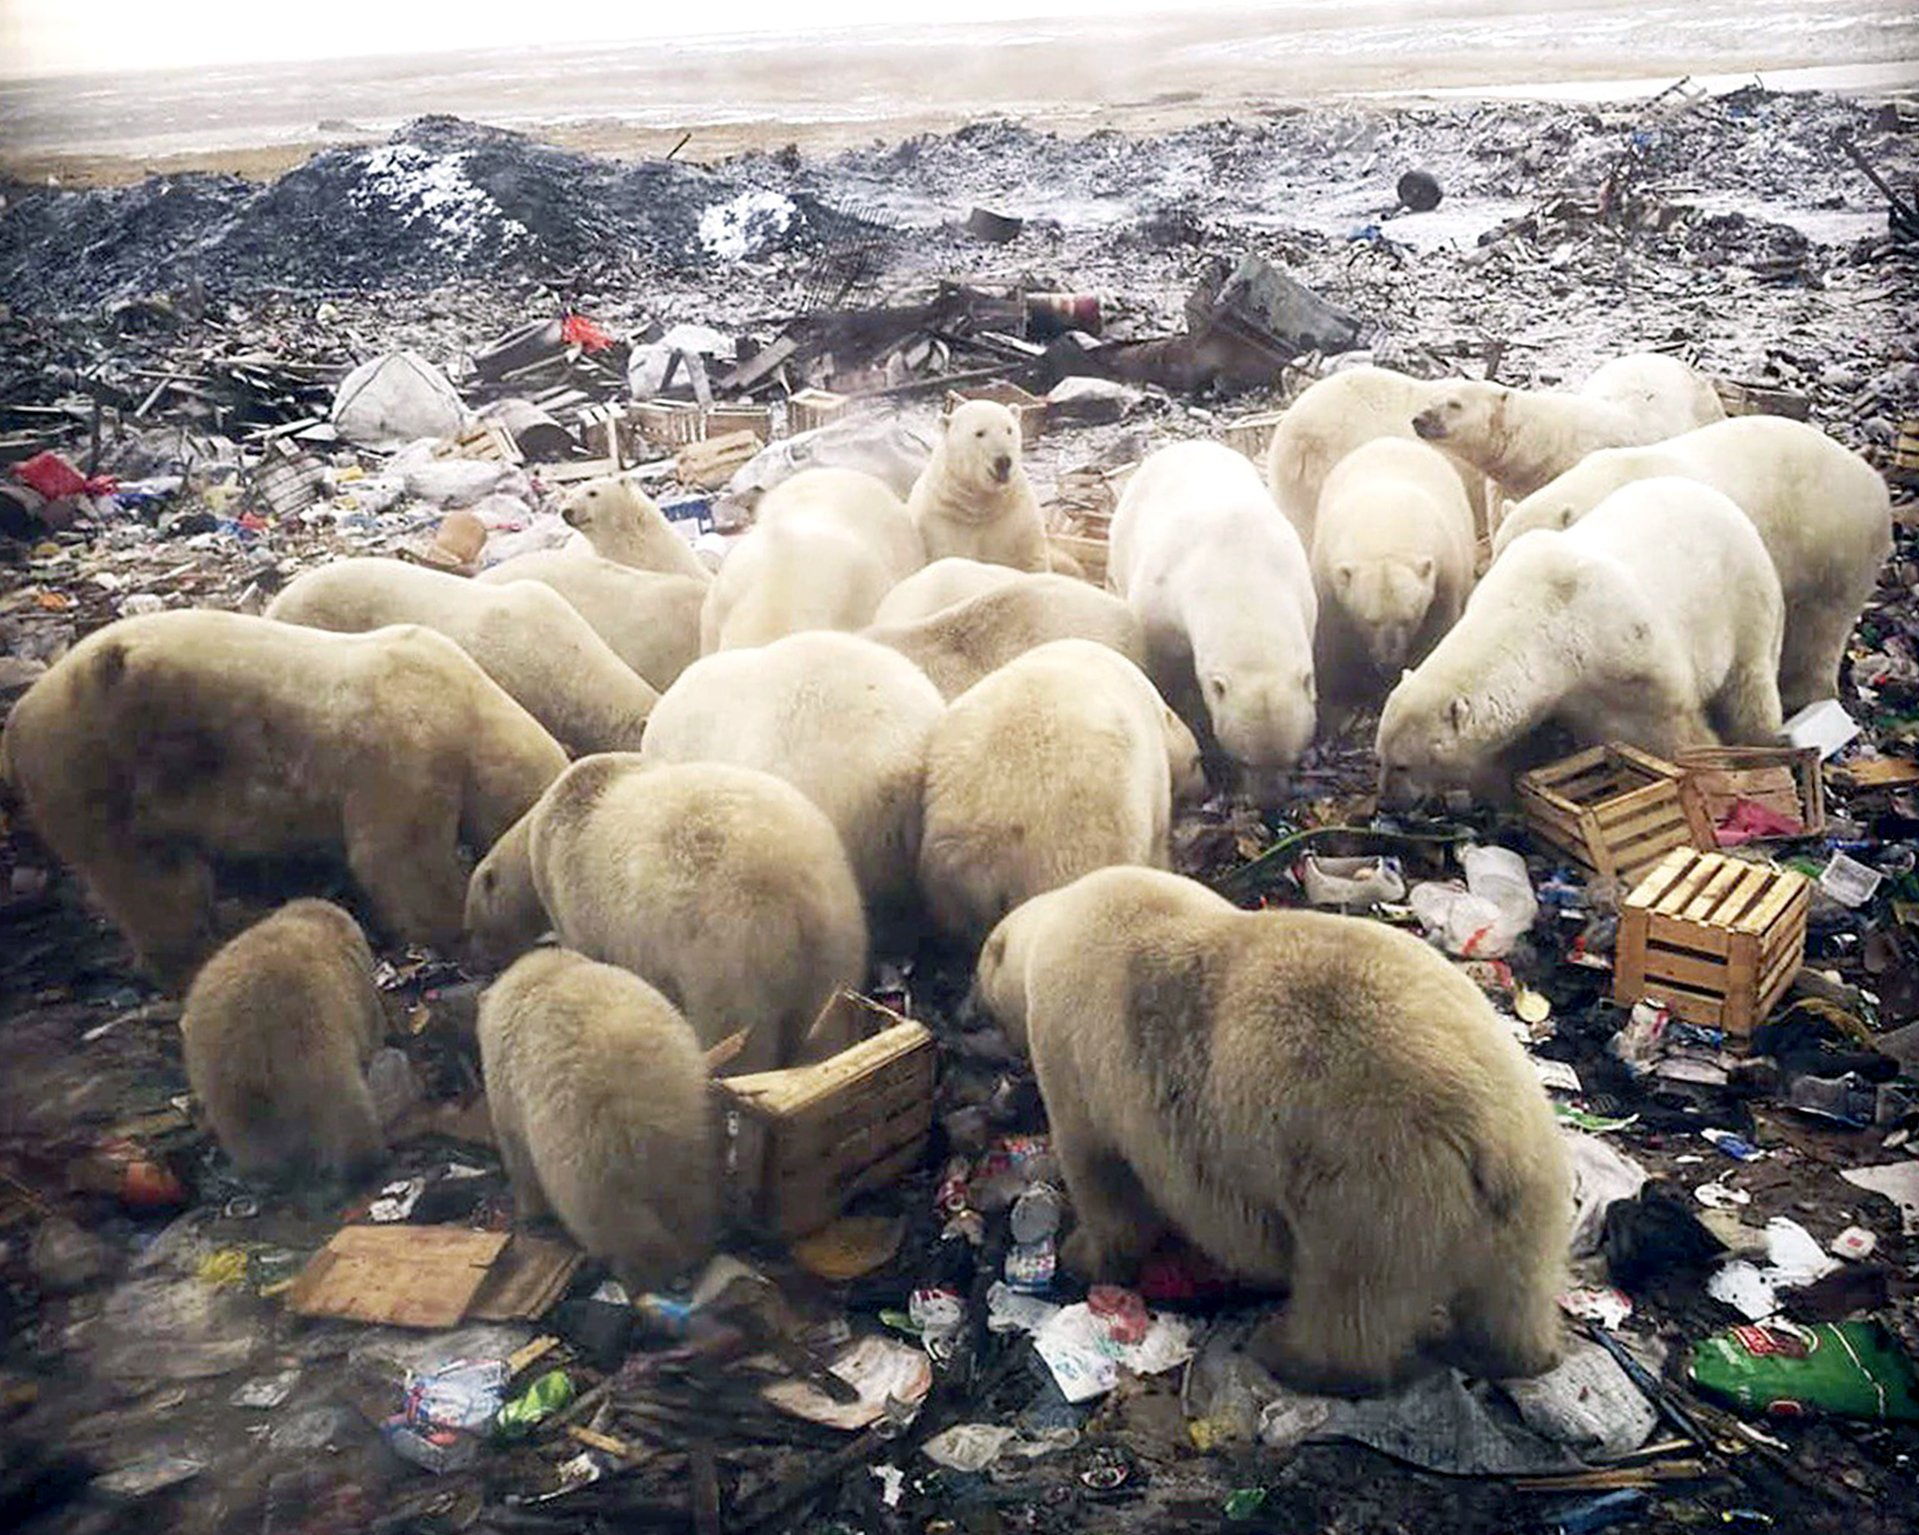 Polar Bear Diet Now 25% Plastic, Russian Researchers Reveal; City Creates 'Alcatraz of Garbage' to Solve Problem